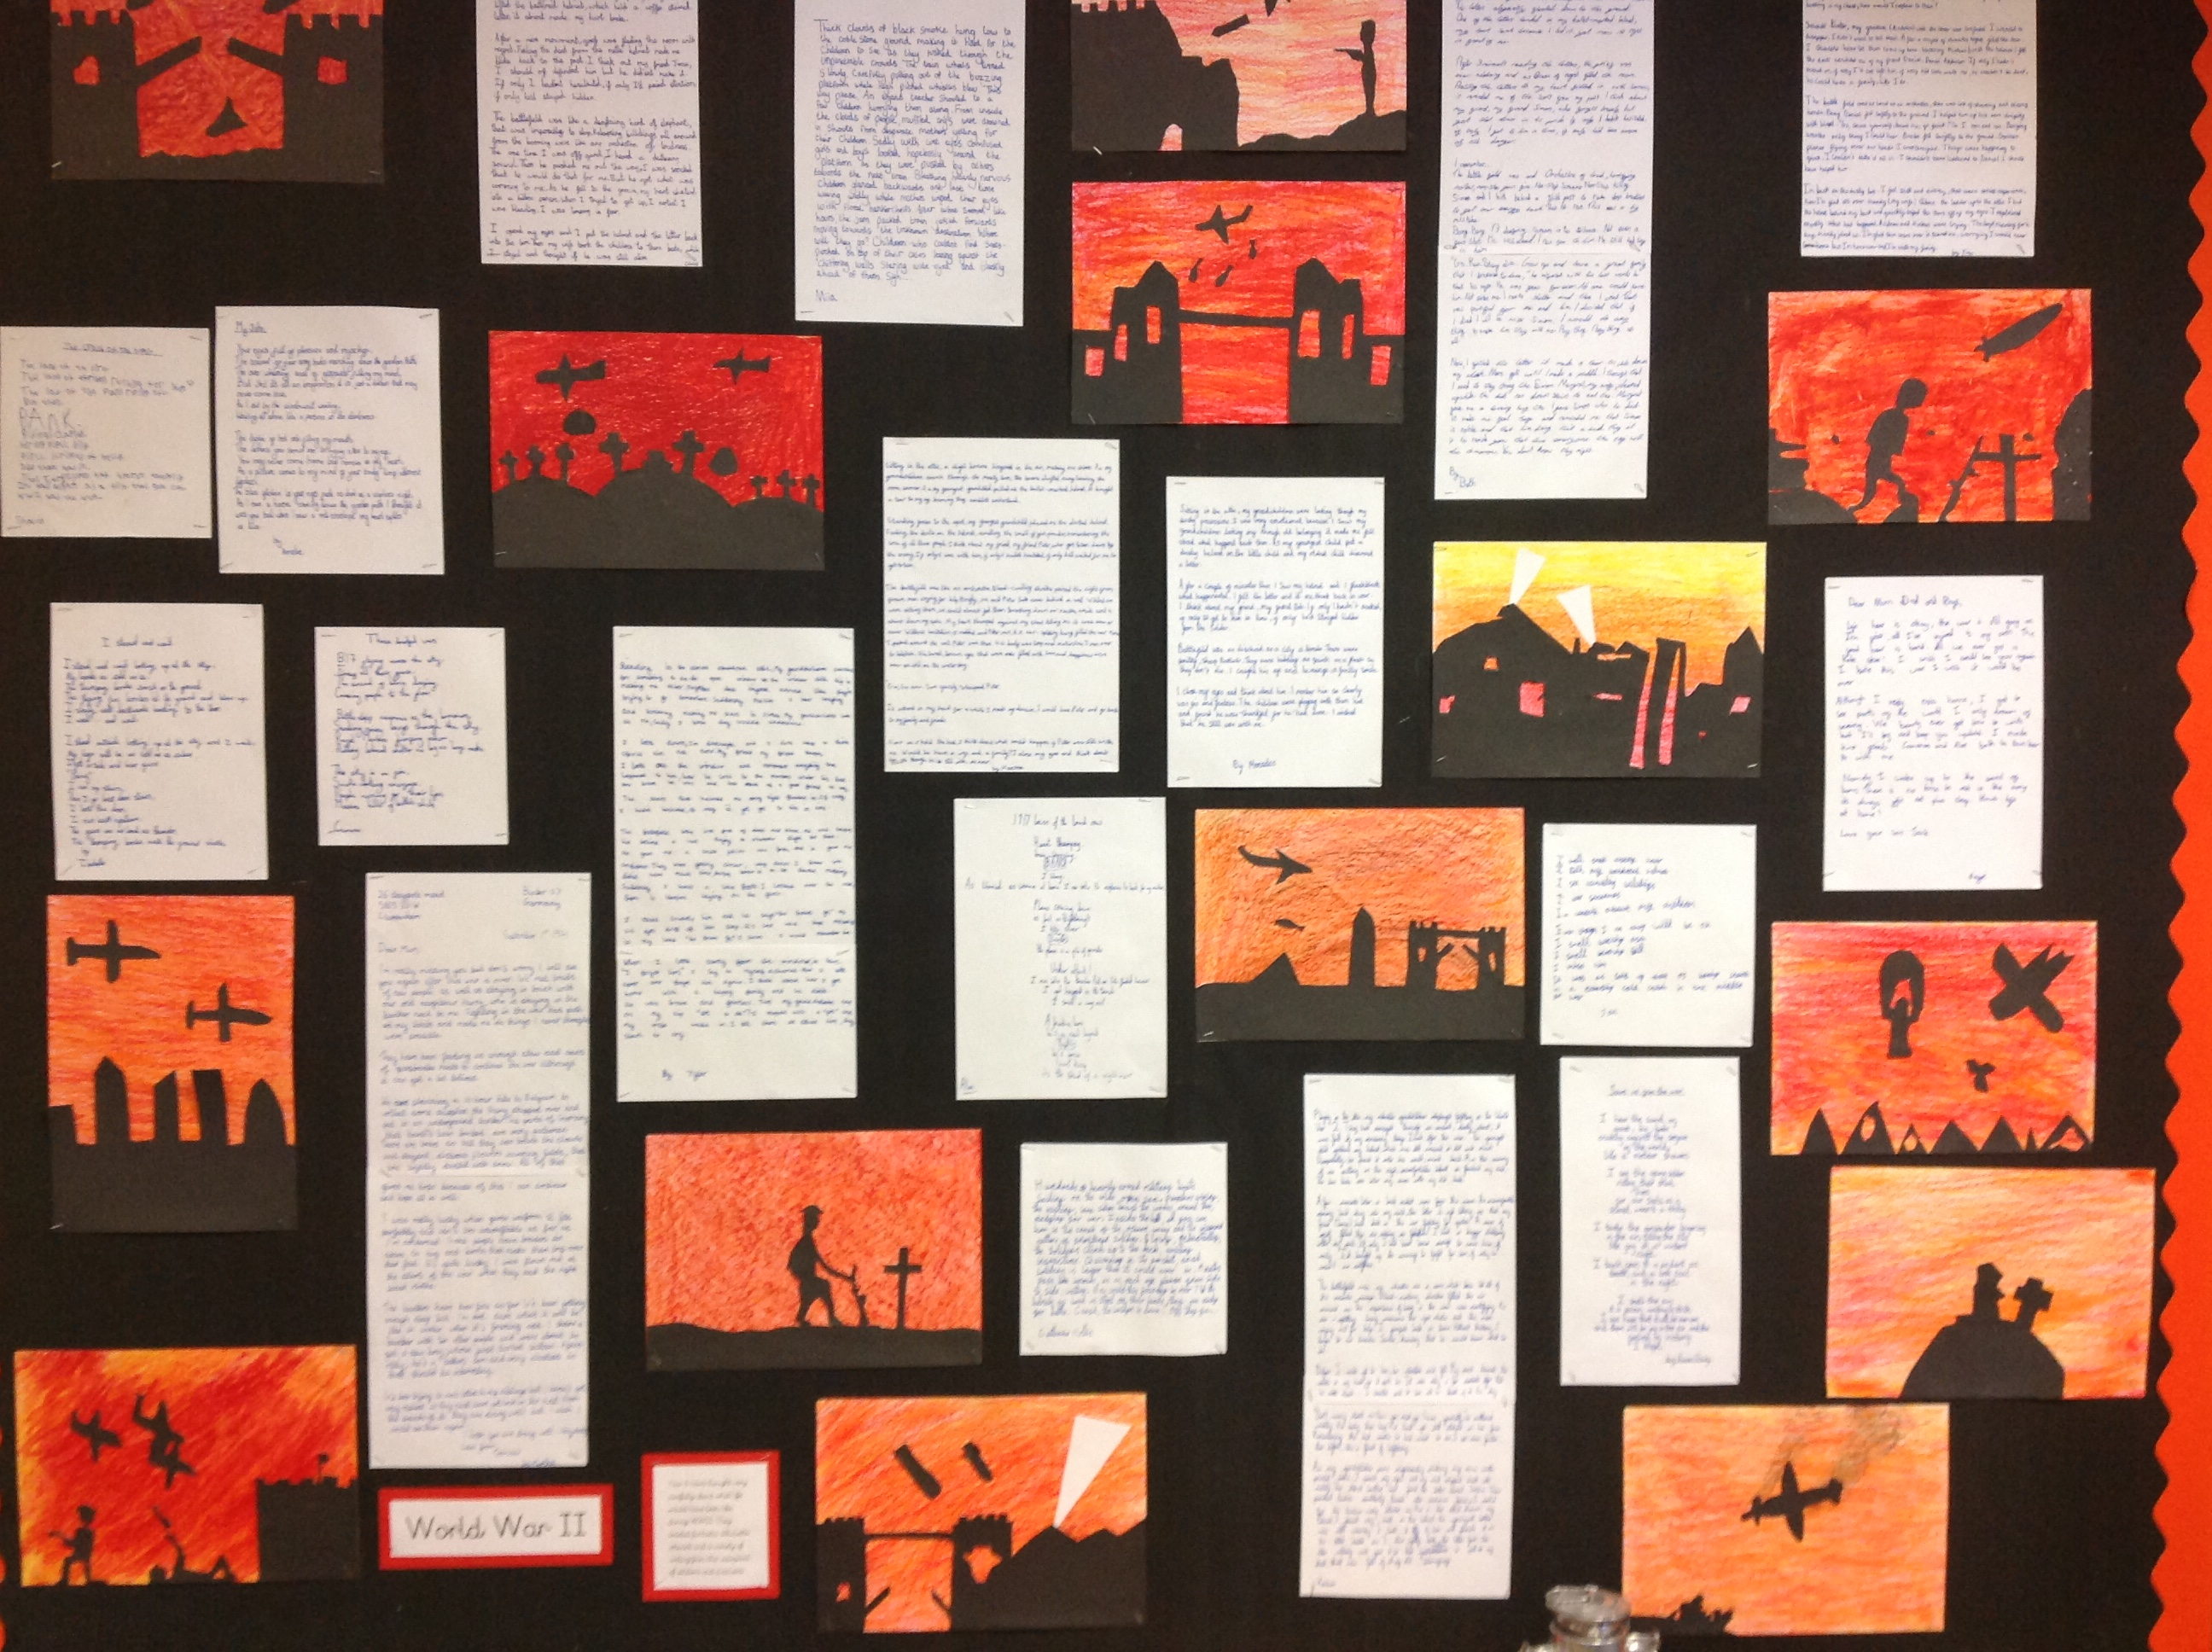 Y6 WW2 Display